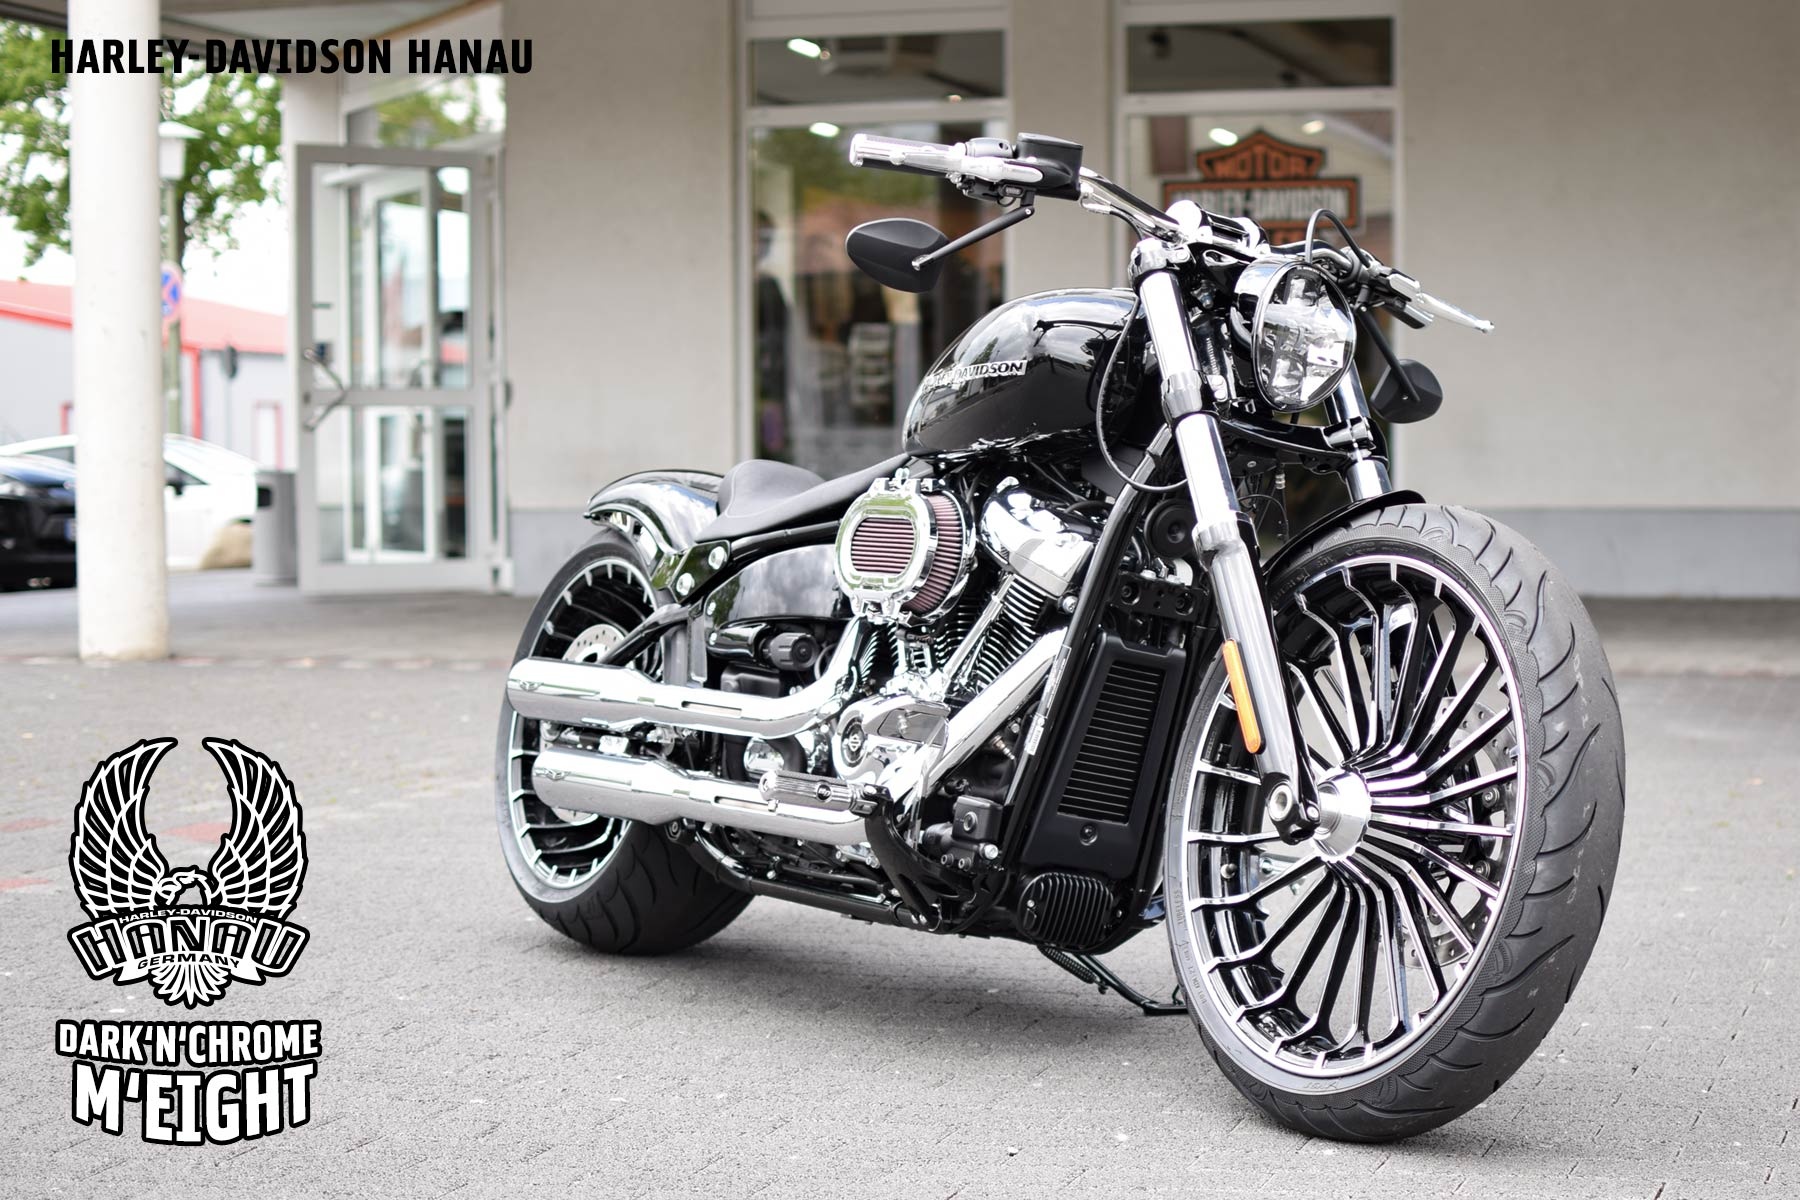 softail-breakout-umbau-m-eight-04